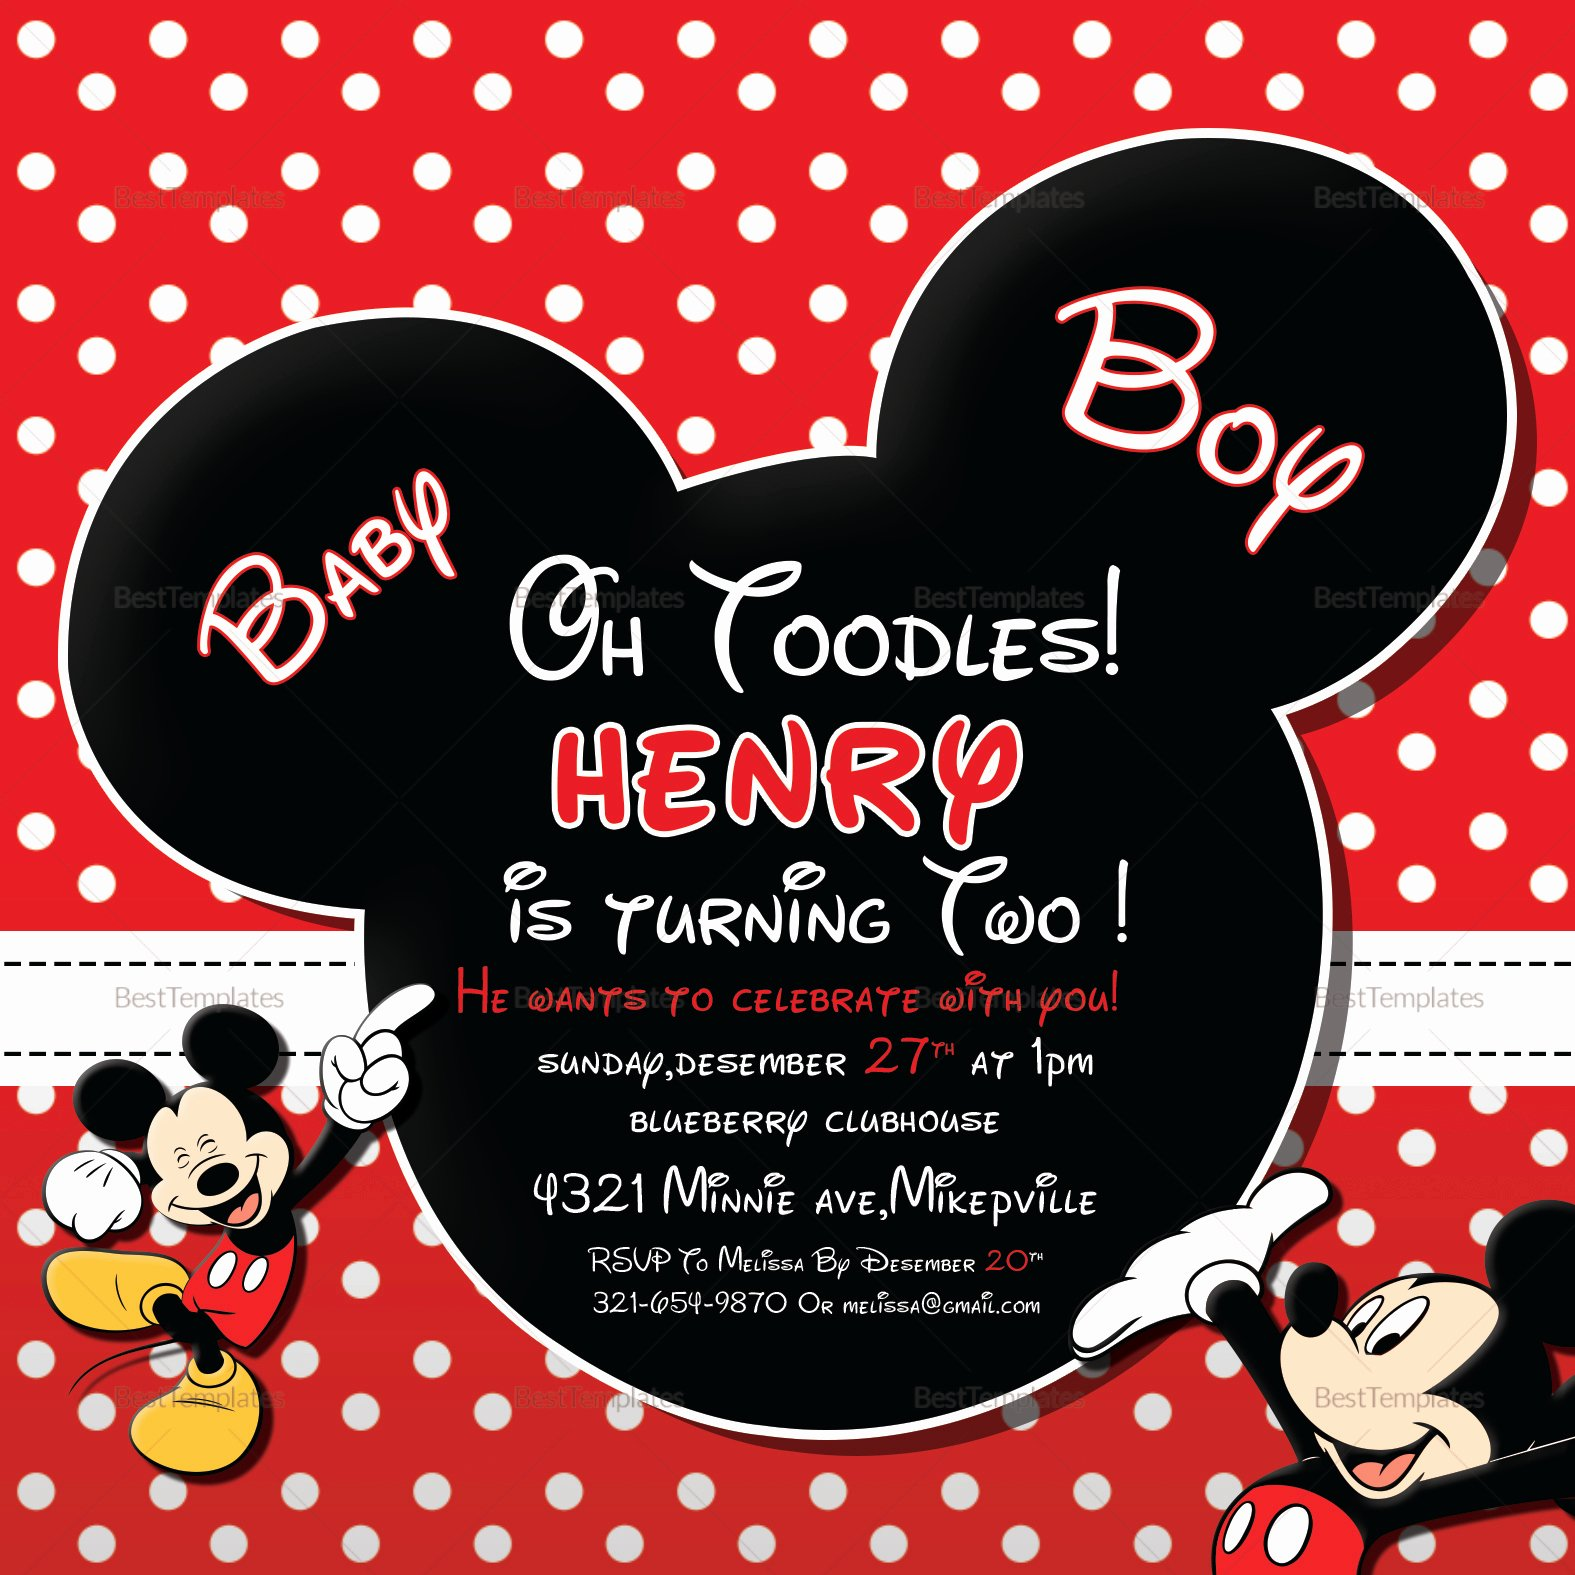 Mickey Mouse Birthday Invitations Template Fresh Cute Mickey Mouse Birthday Invitation Design Template In